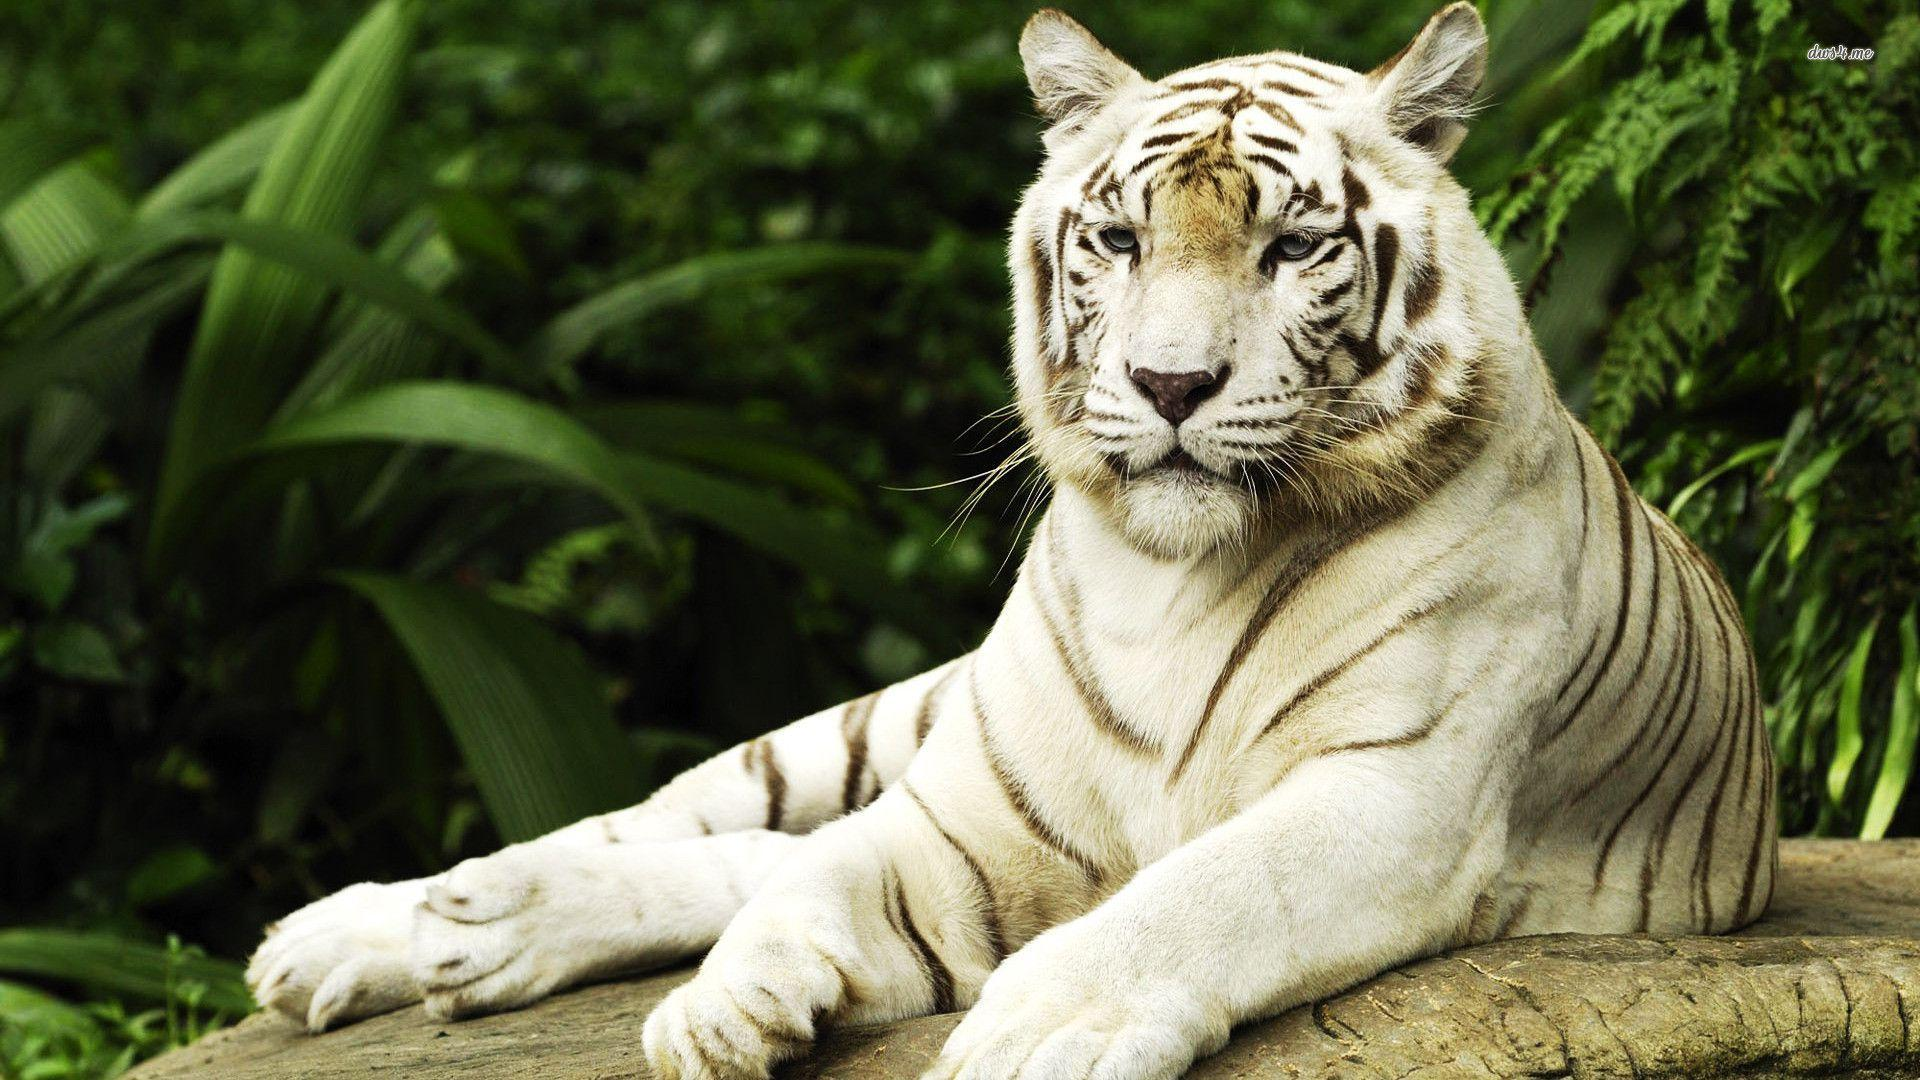 White Tiger Wallpapers HD 1920x1080